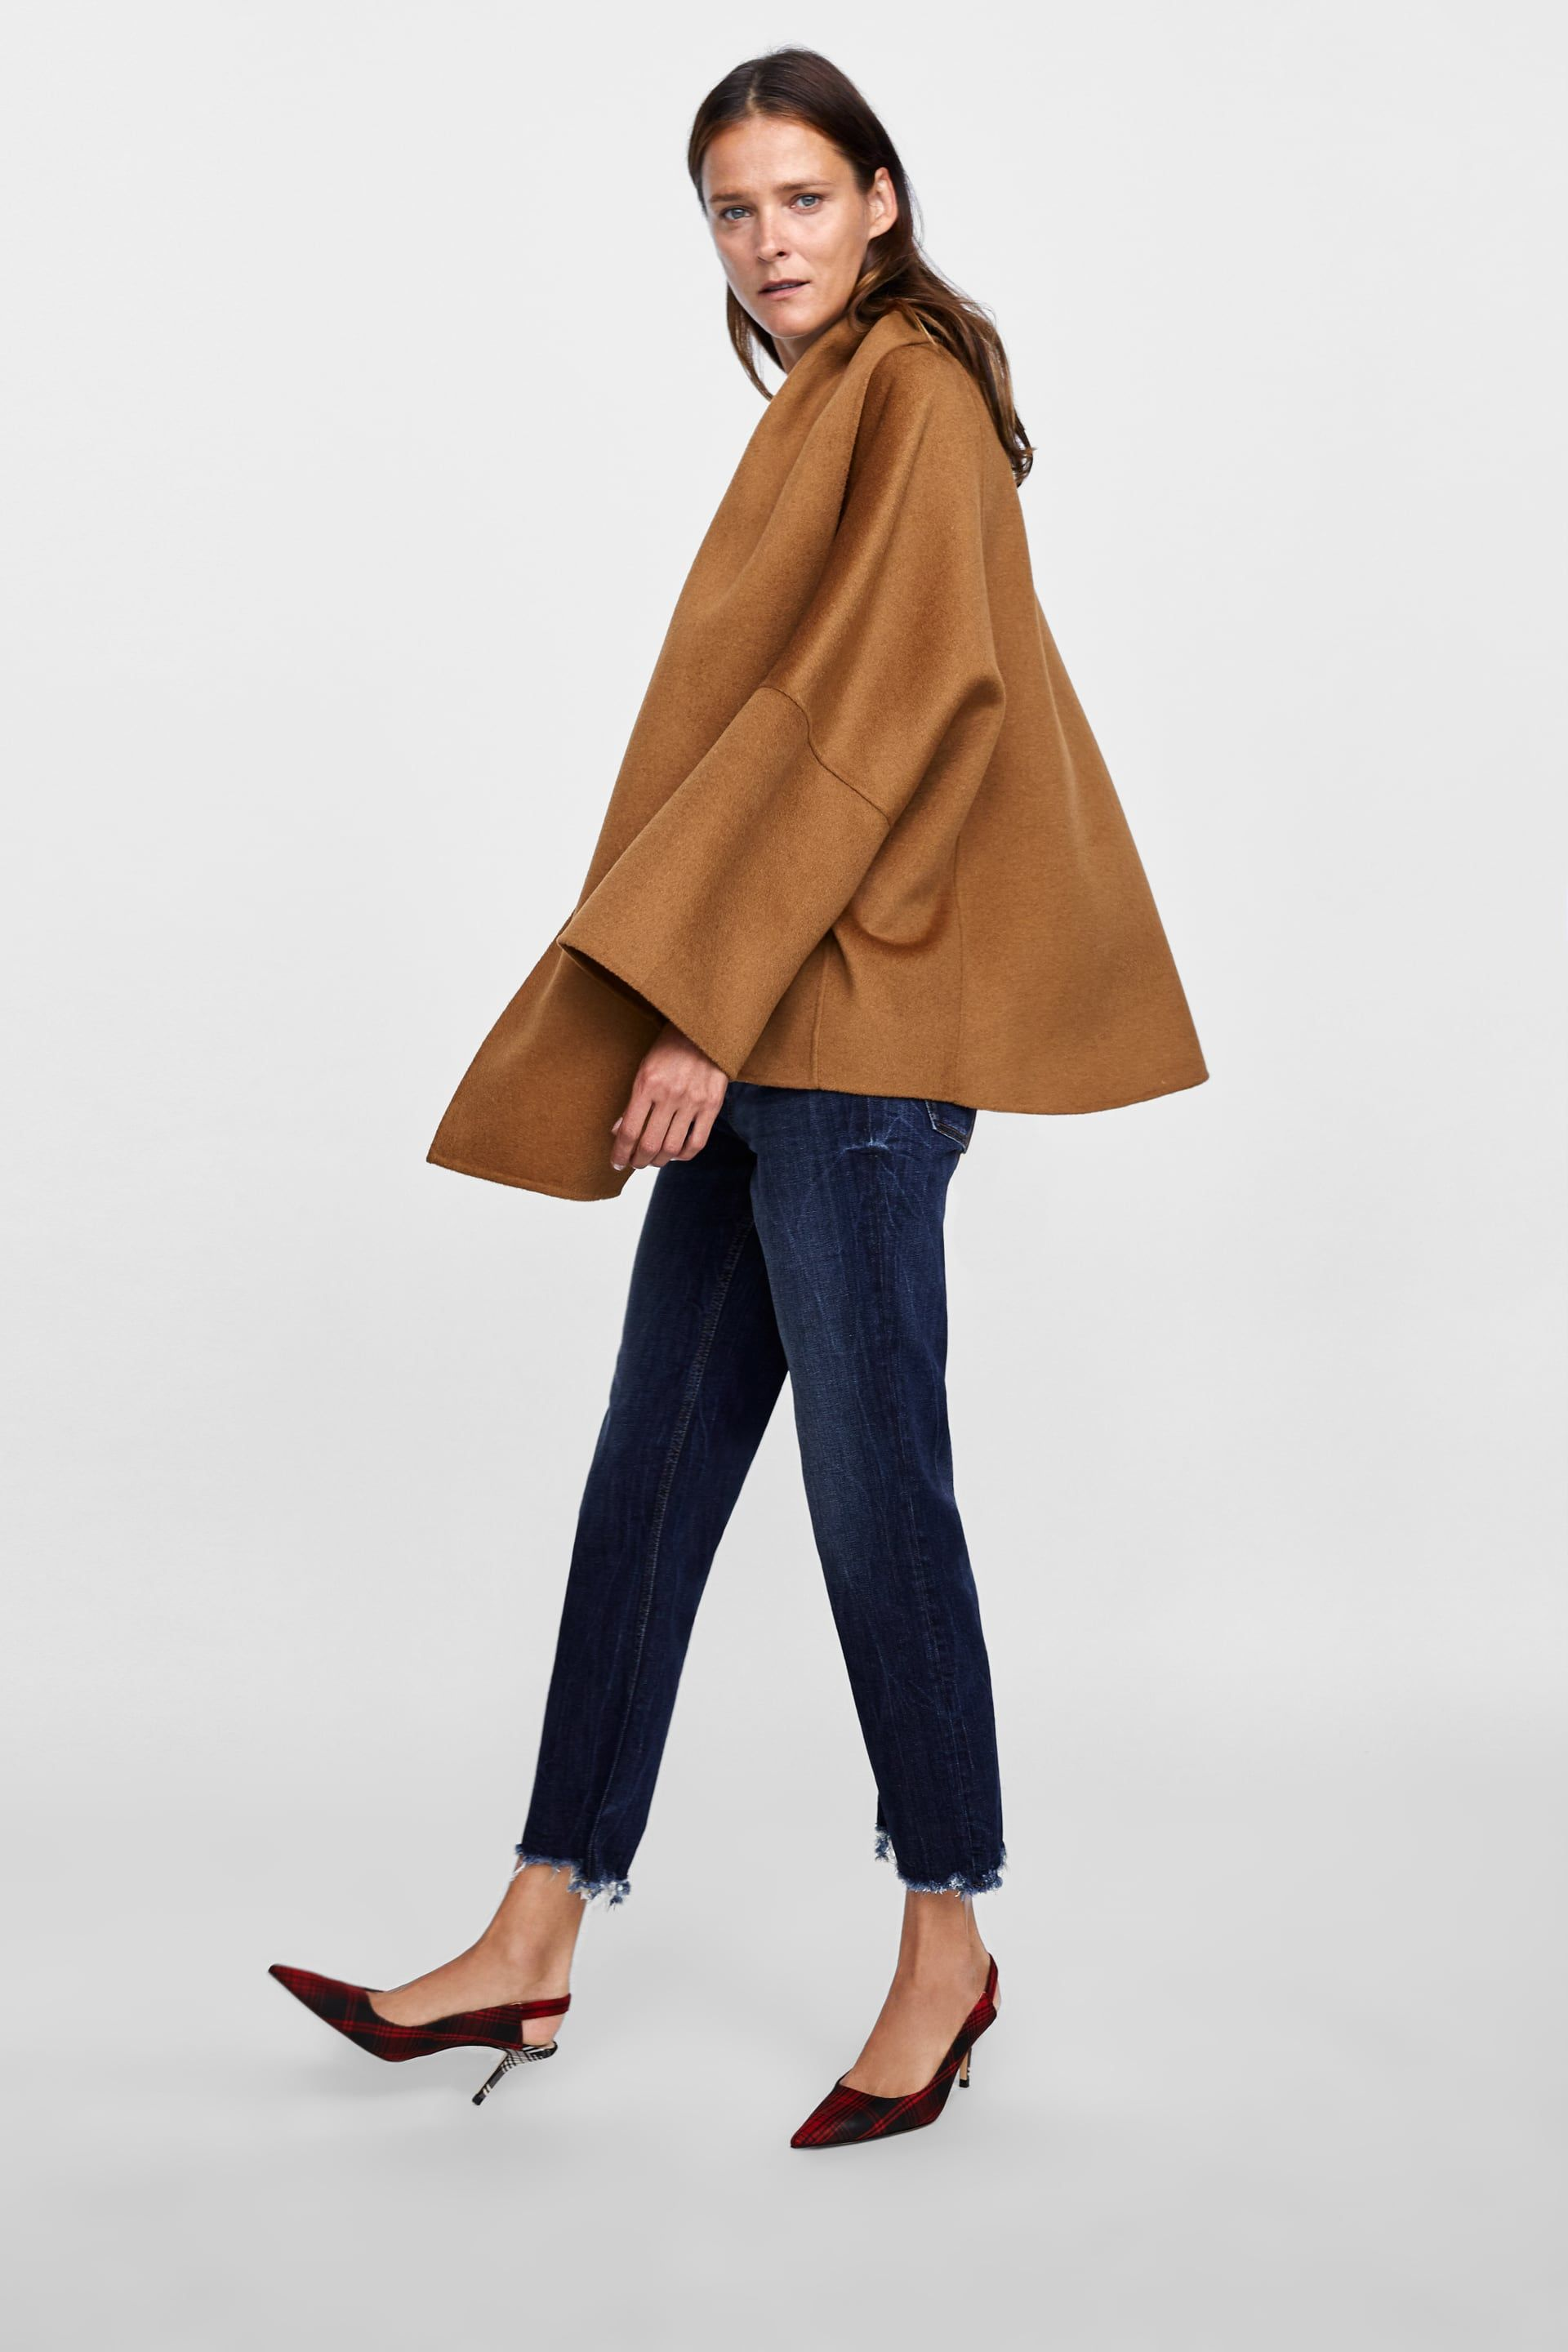 5489f3b297 ABRIGO CAPA BUFANDA | Zara | Cape coat, Zara cape, Capes for women